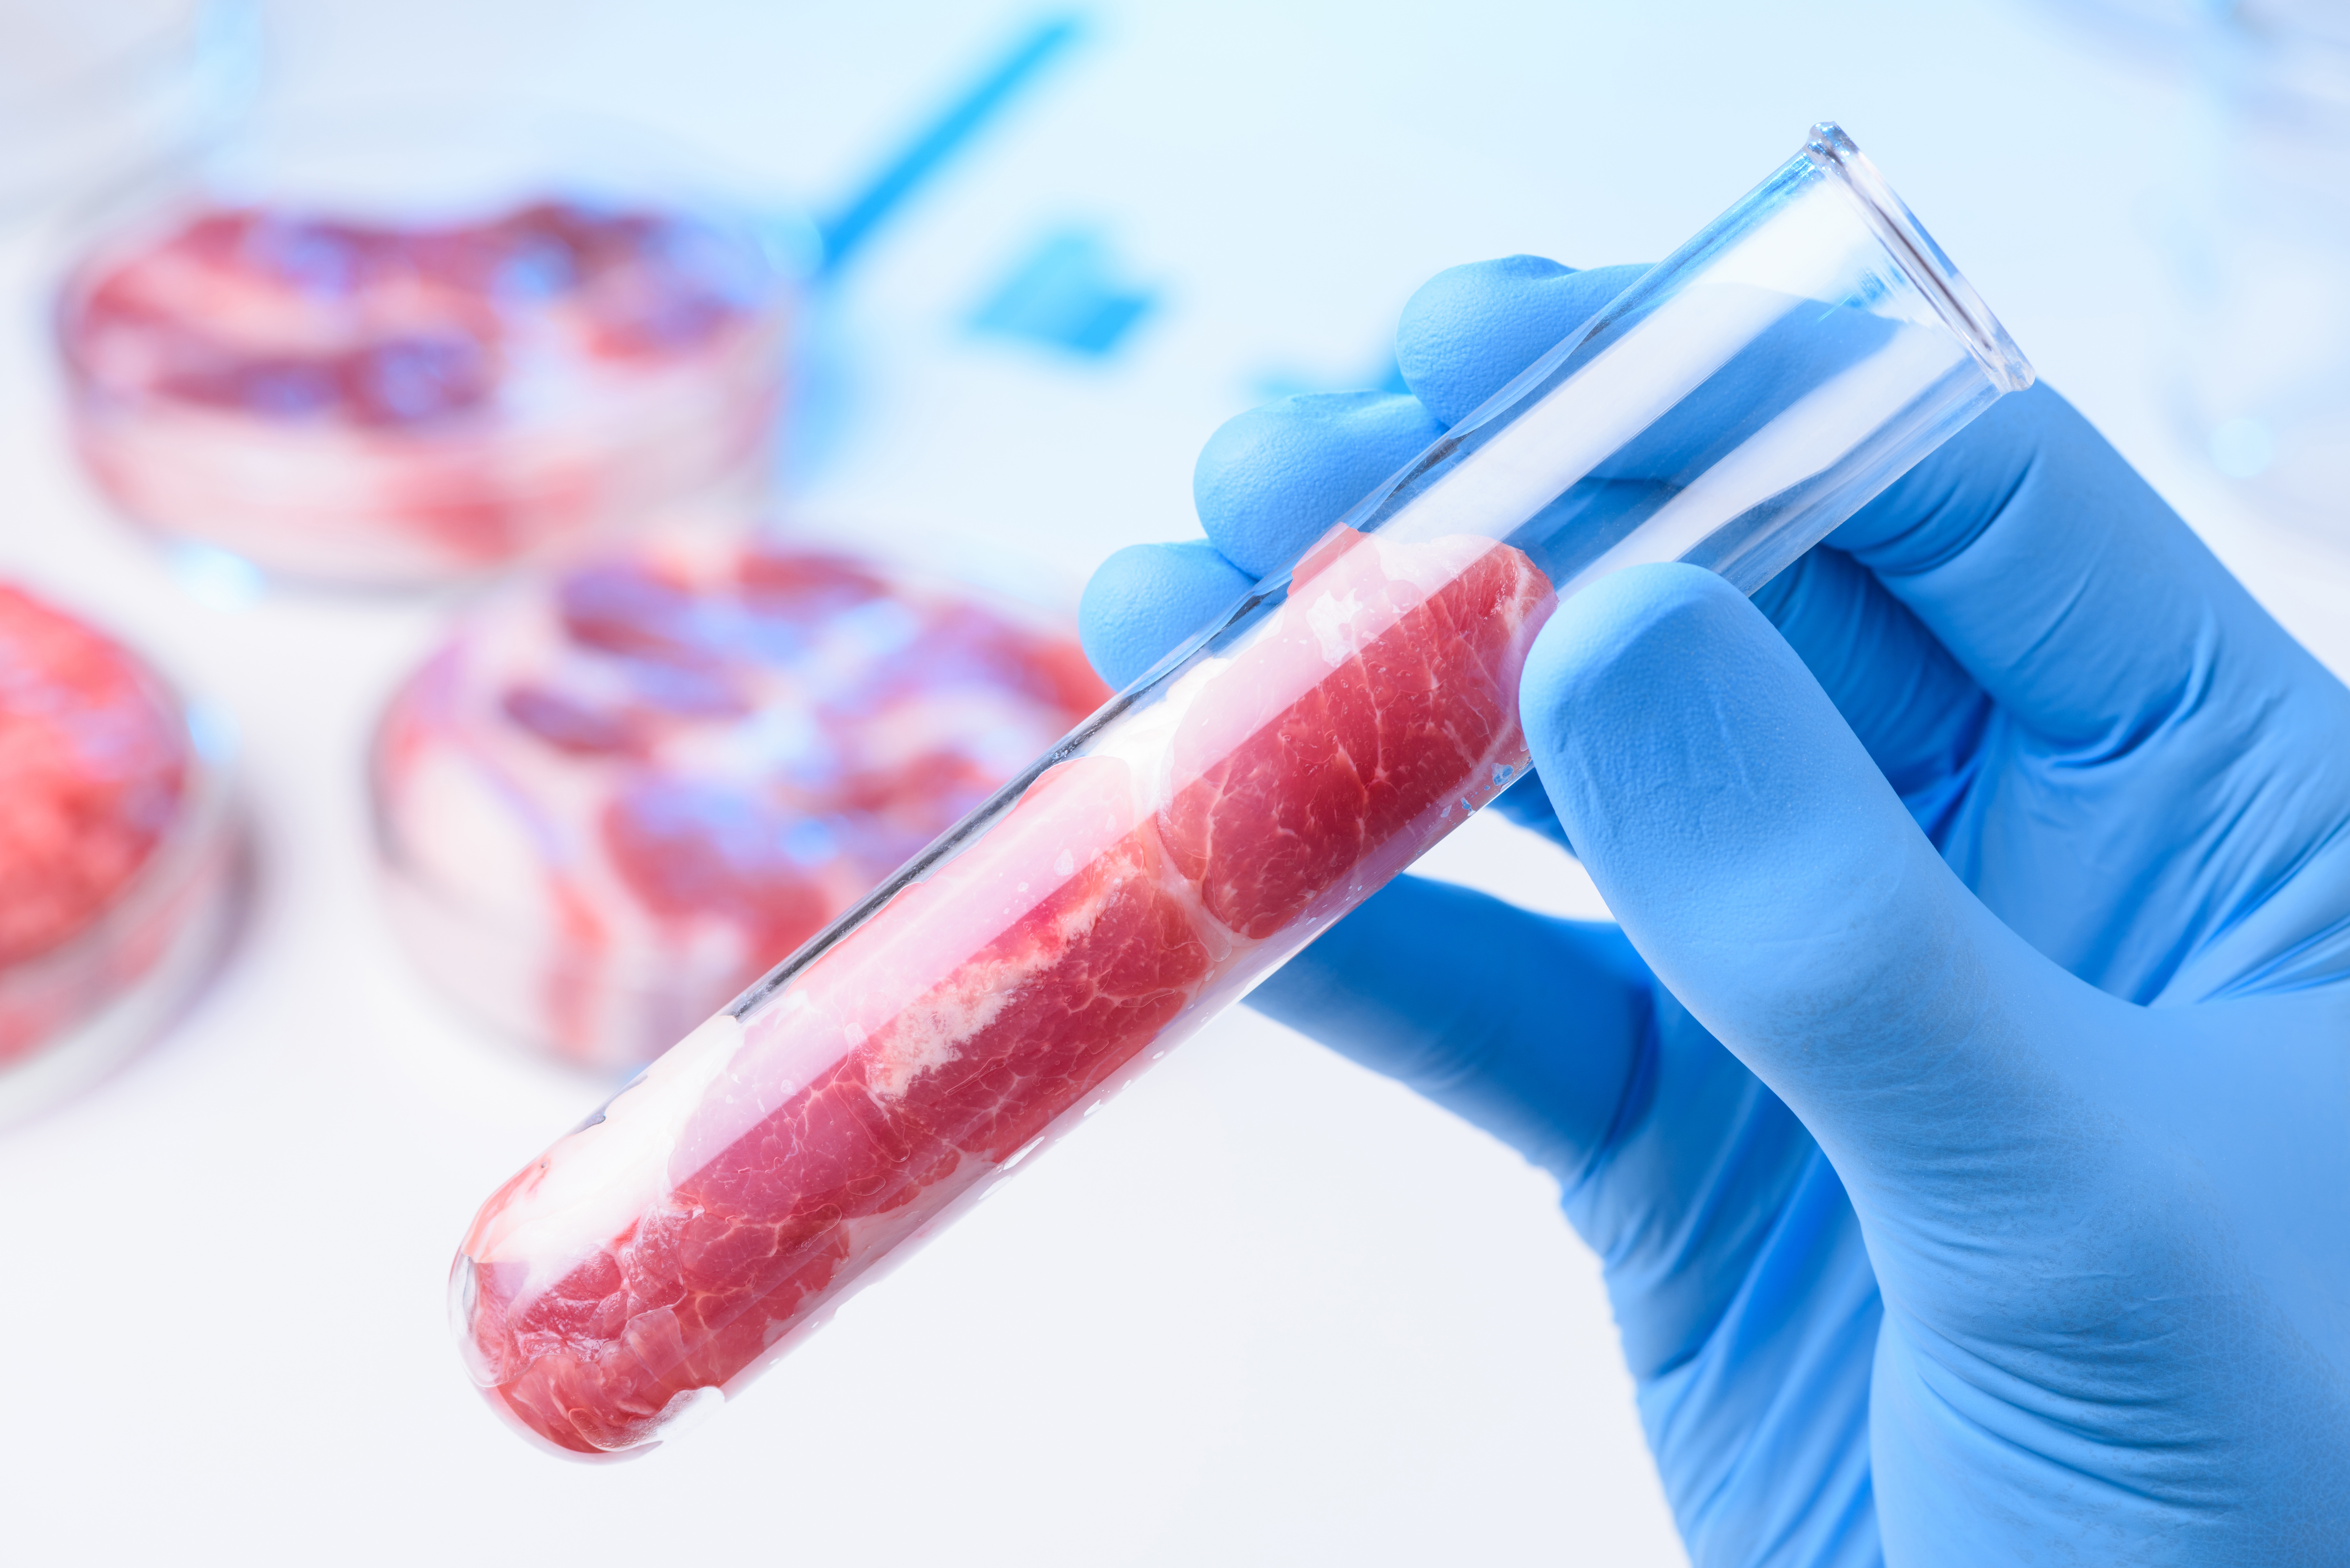 Innovative Research Program for the Development of a Digital Platform of Microbiological, Chemical and Multispectral Data Concerning the Safety and Quality of Food